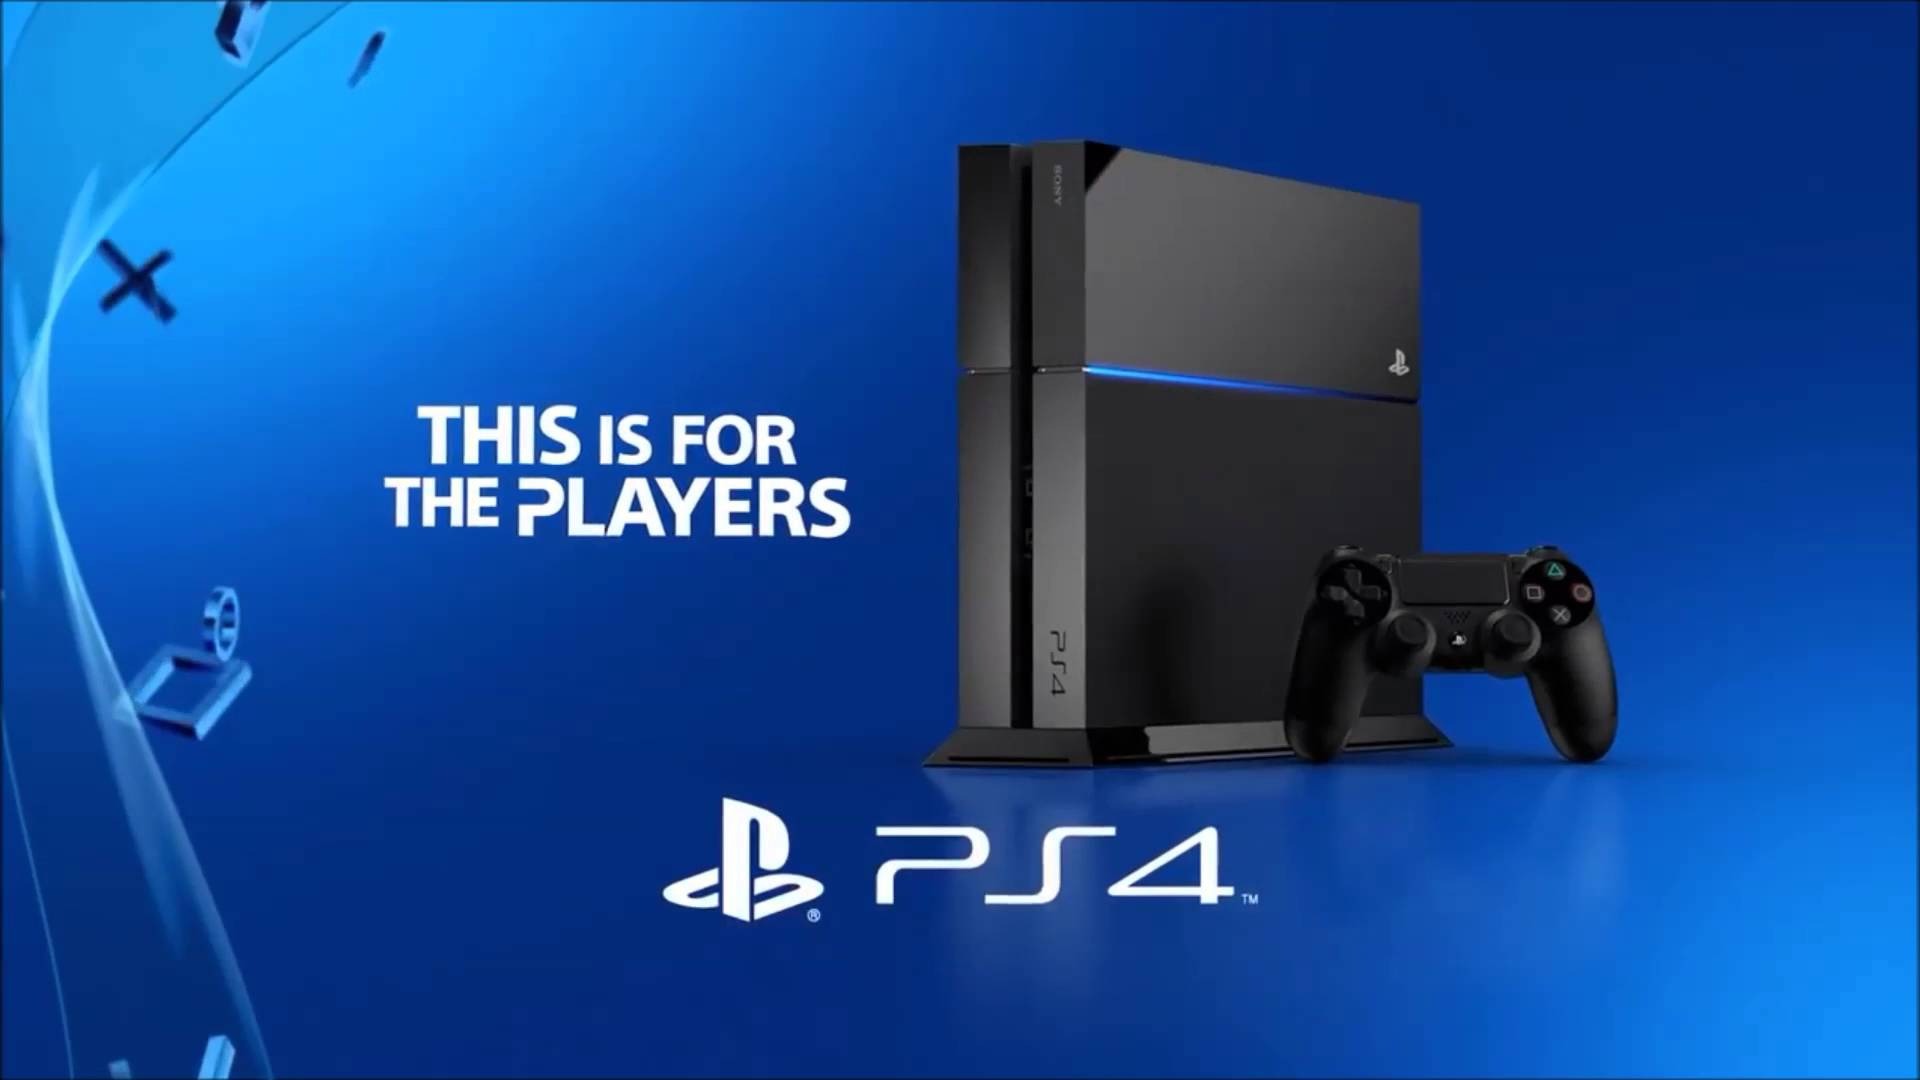 Sony, Sony please stop being hostile.